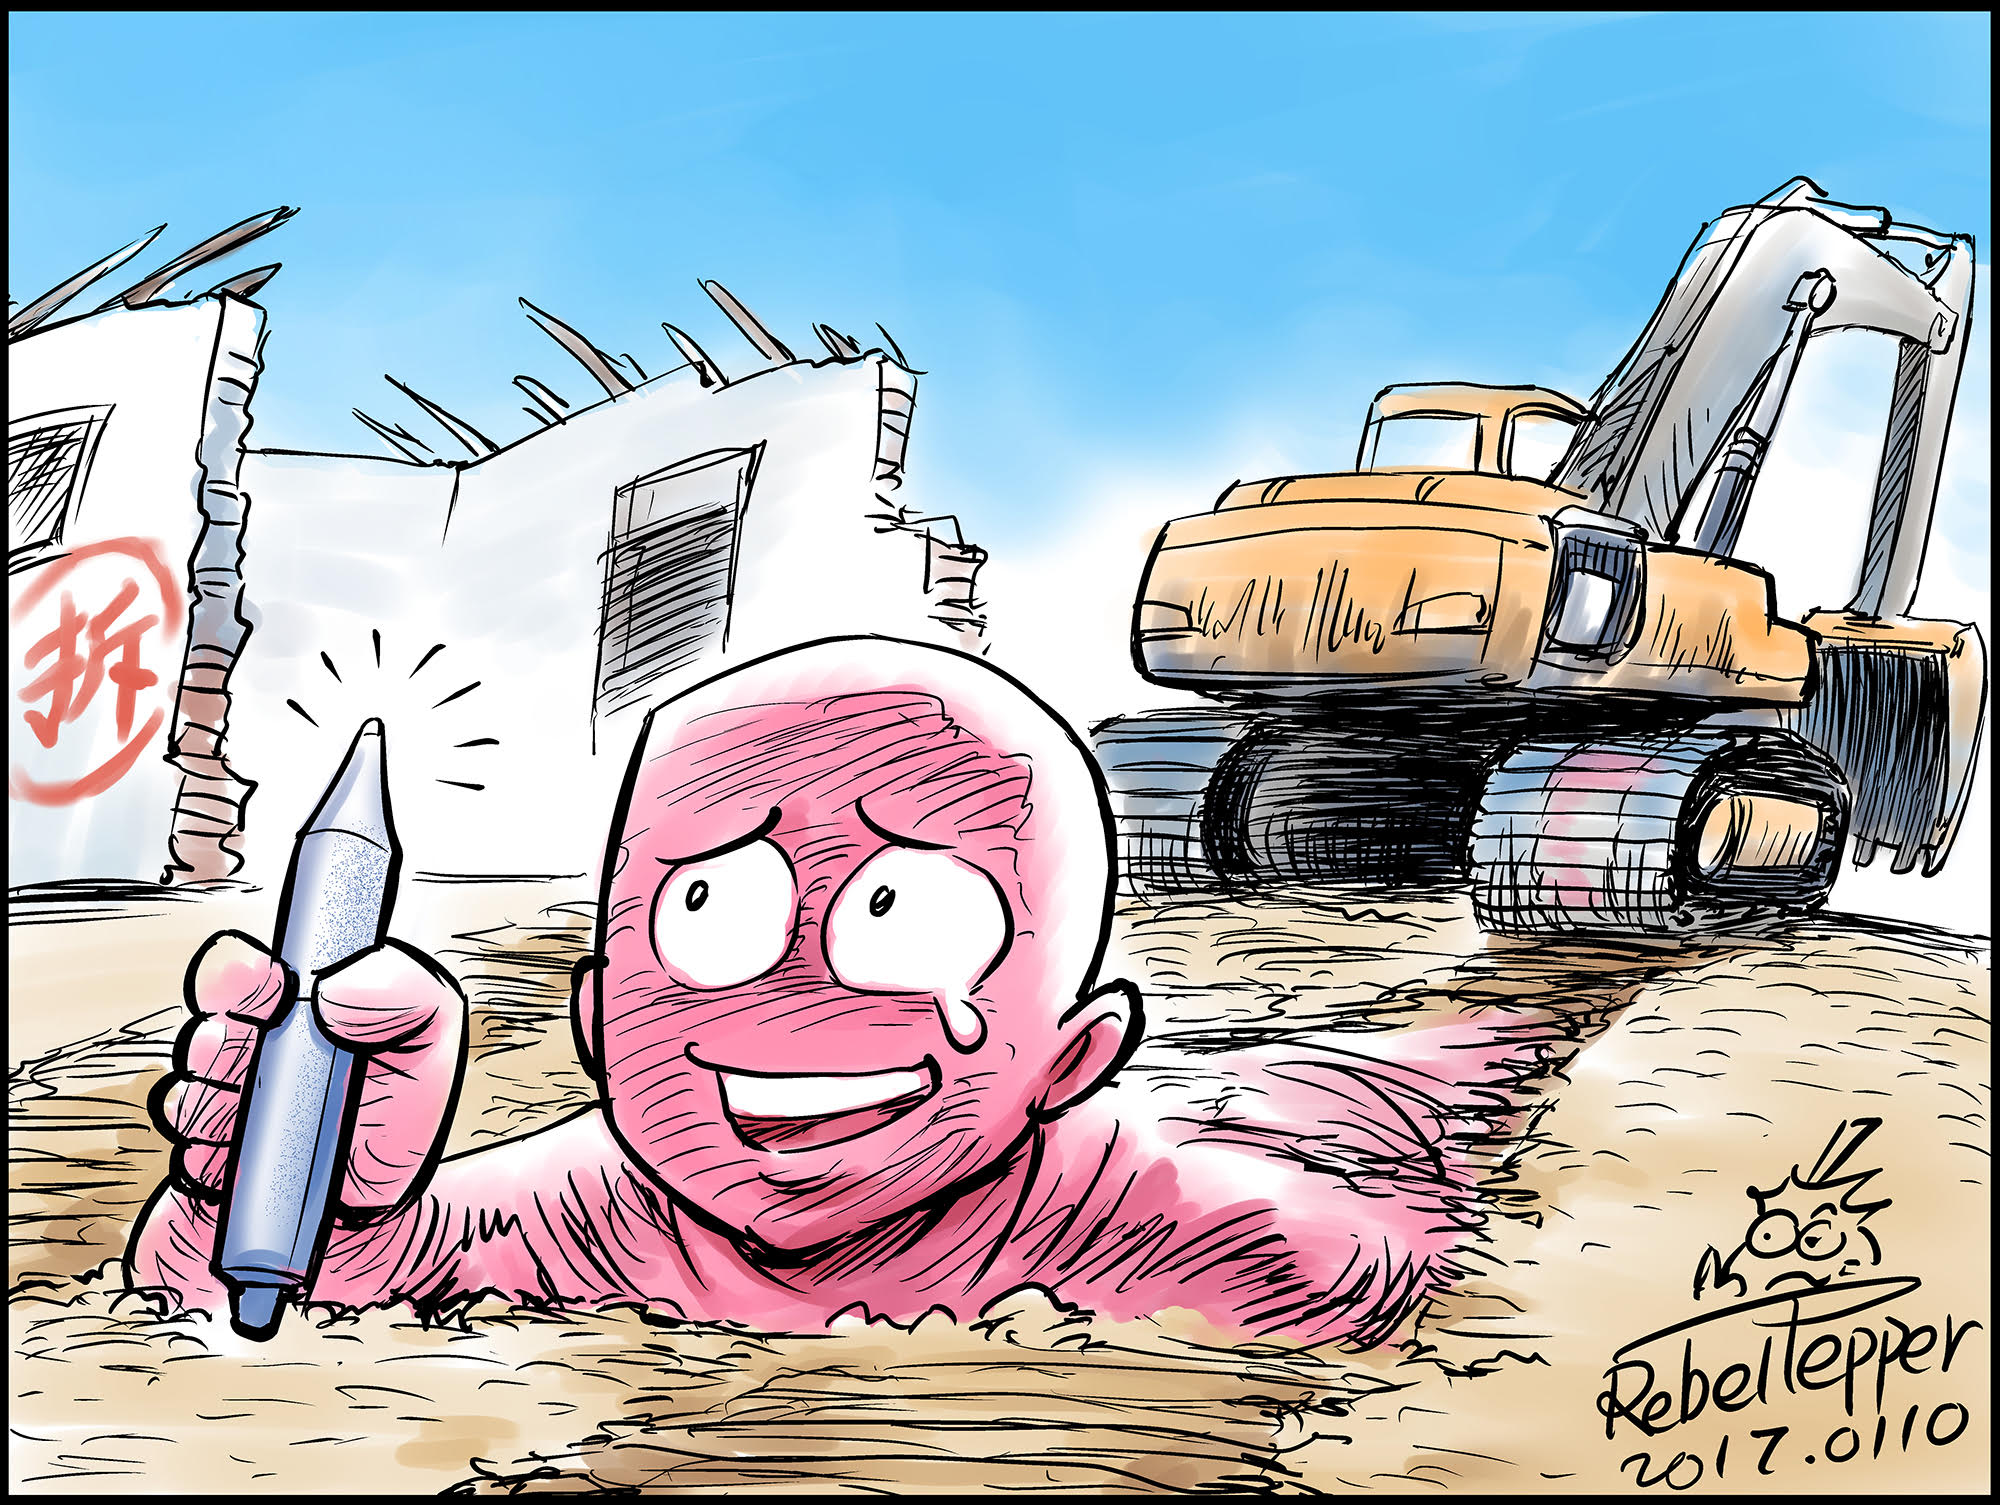 Little Pinks, Ballpoint Pens, and Forced Demolitions